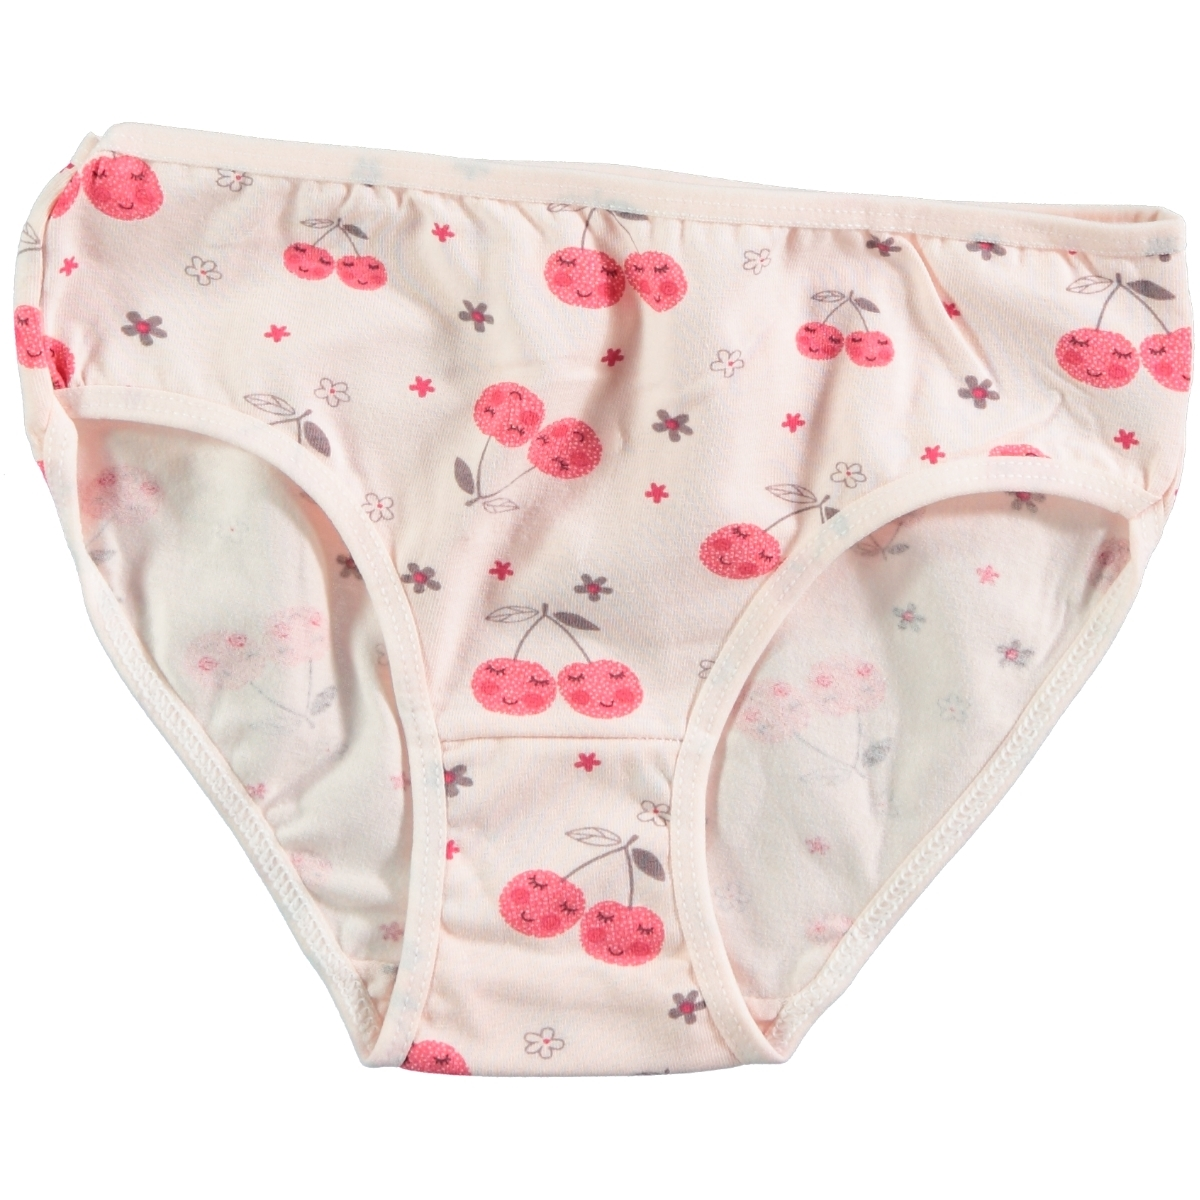 Donella Powder Pink Panties Girl Child The Ages Of 2-8